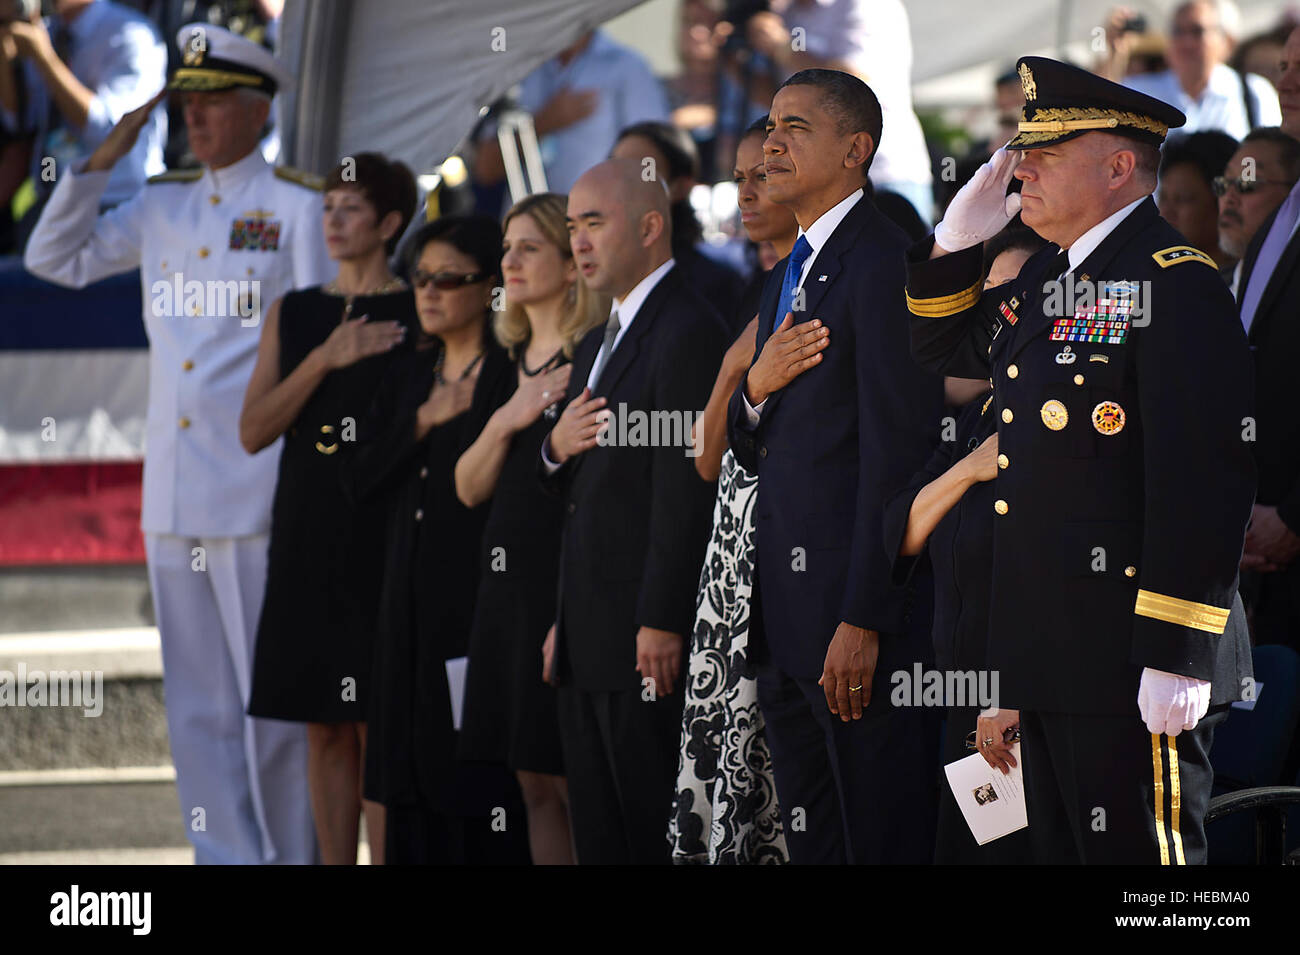 President Barack Obama, first lady Michelle Obama, U.S. Navy Adm. Samuel J. Locklear III, commander, U.S. Pacific - Stock Image